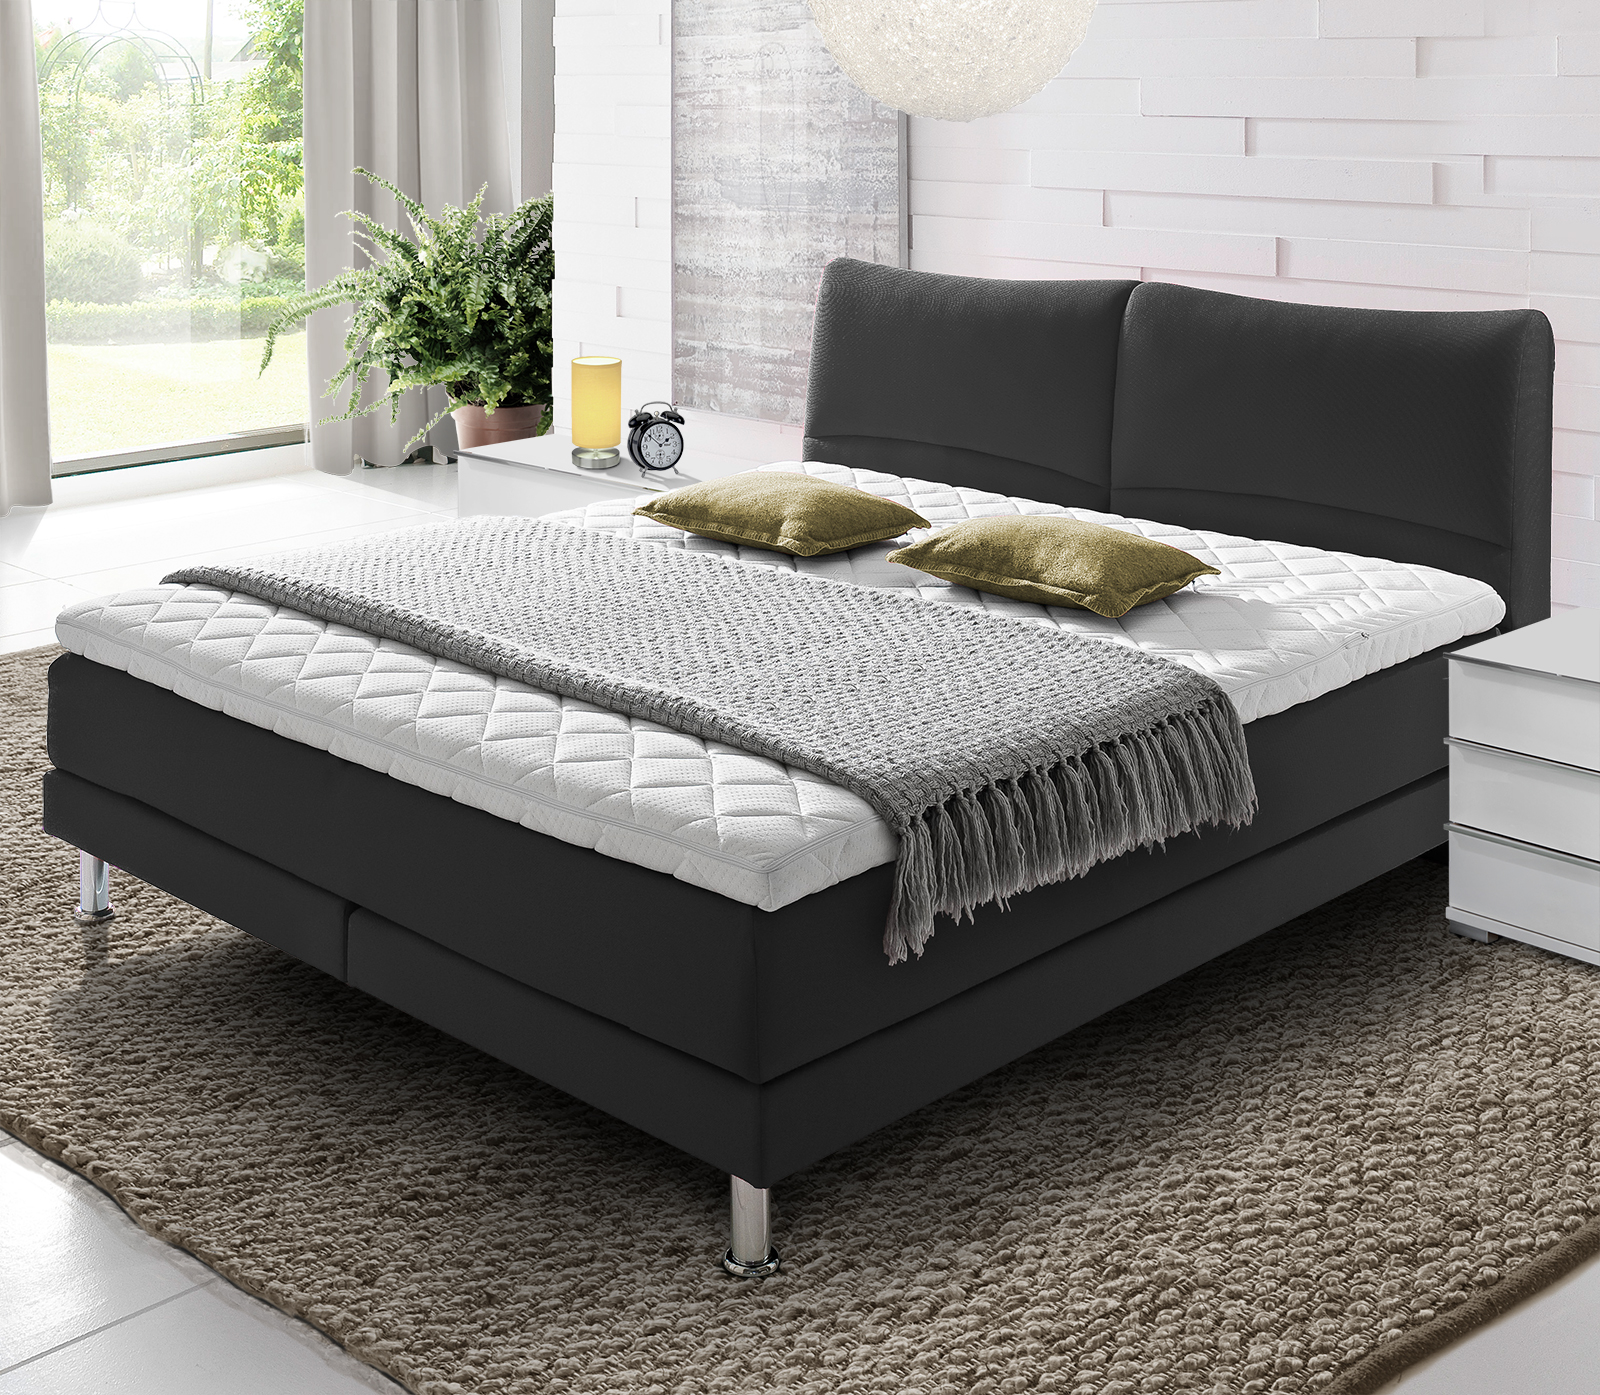 boxspringbett gr e 140x200 cm im h rtegrad h3 asheville. Black Bedroom Furniture Sets. Home Design Ideas